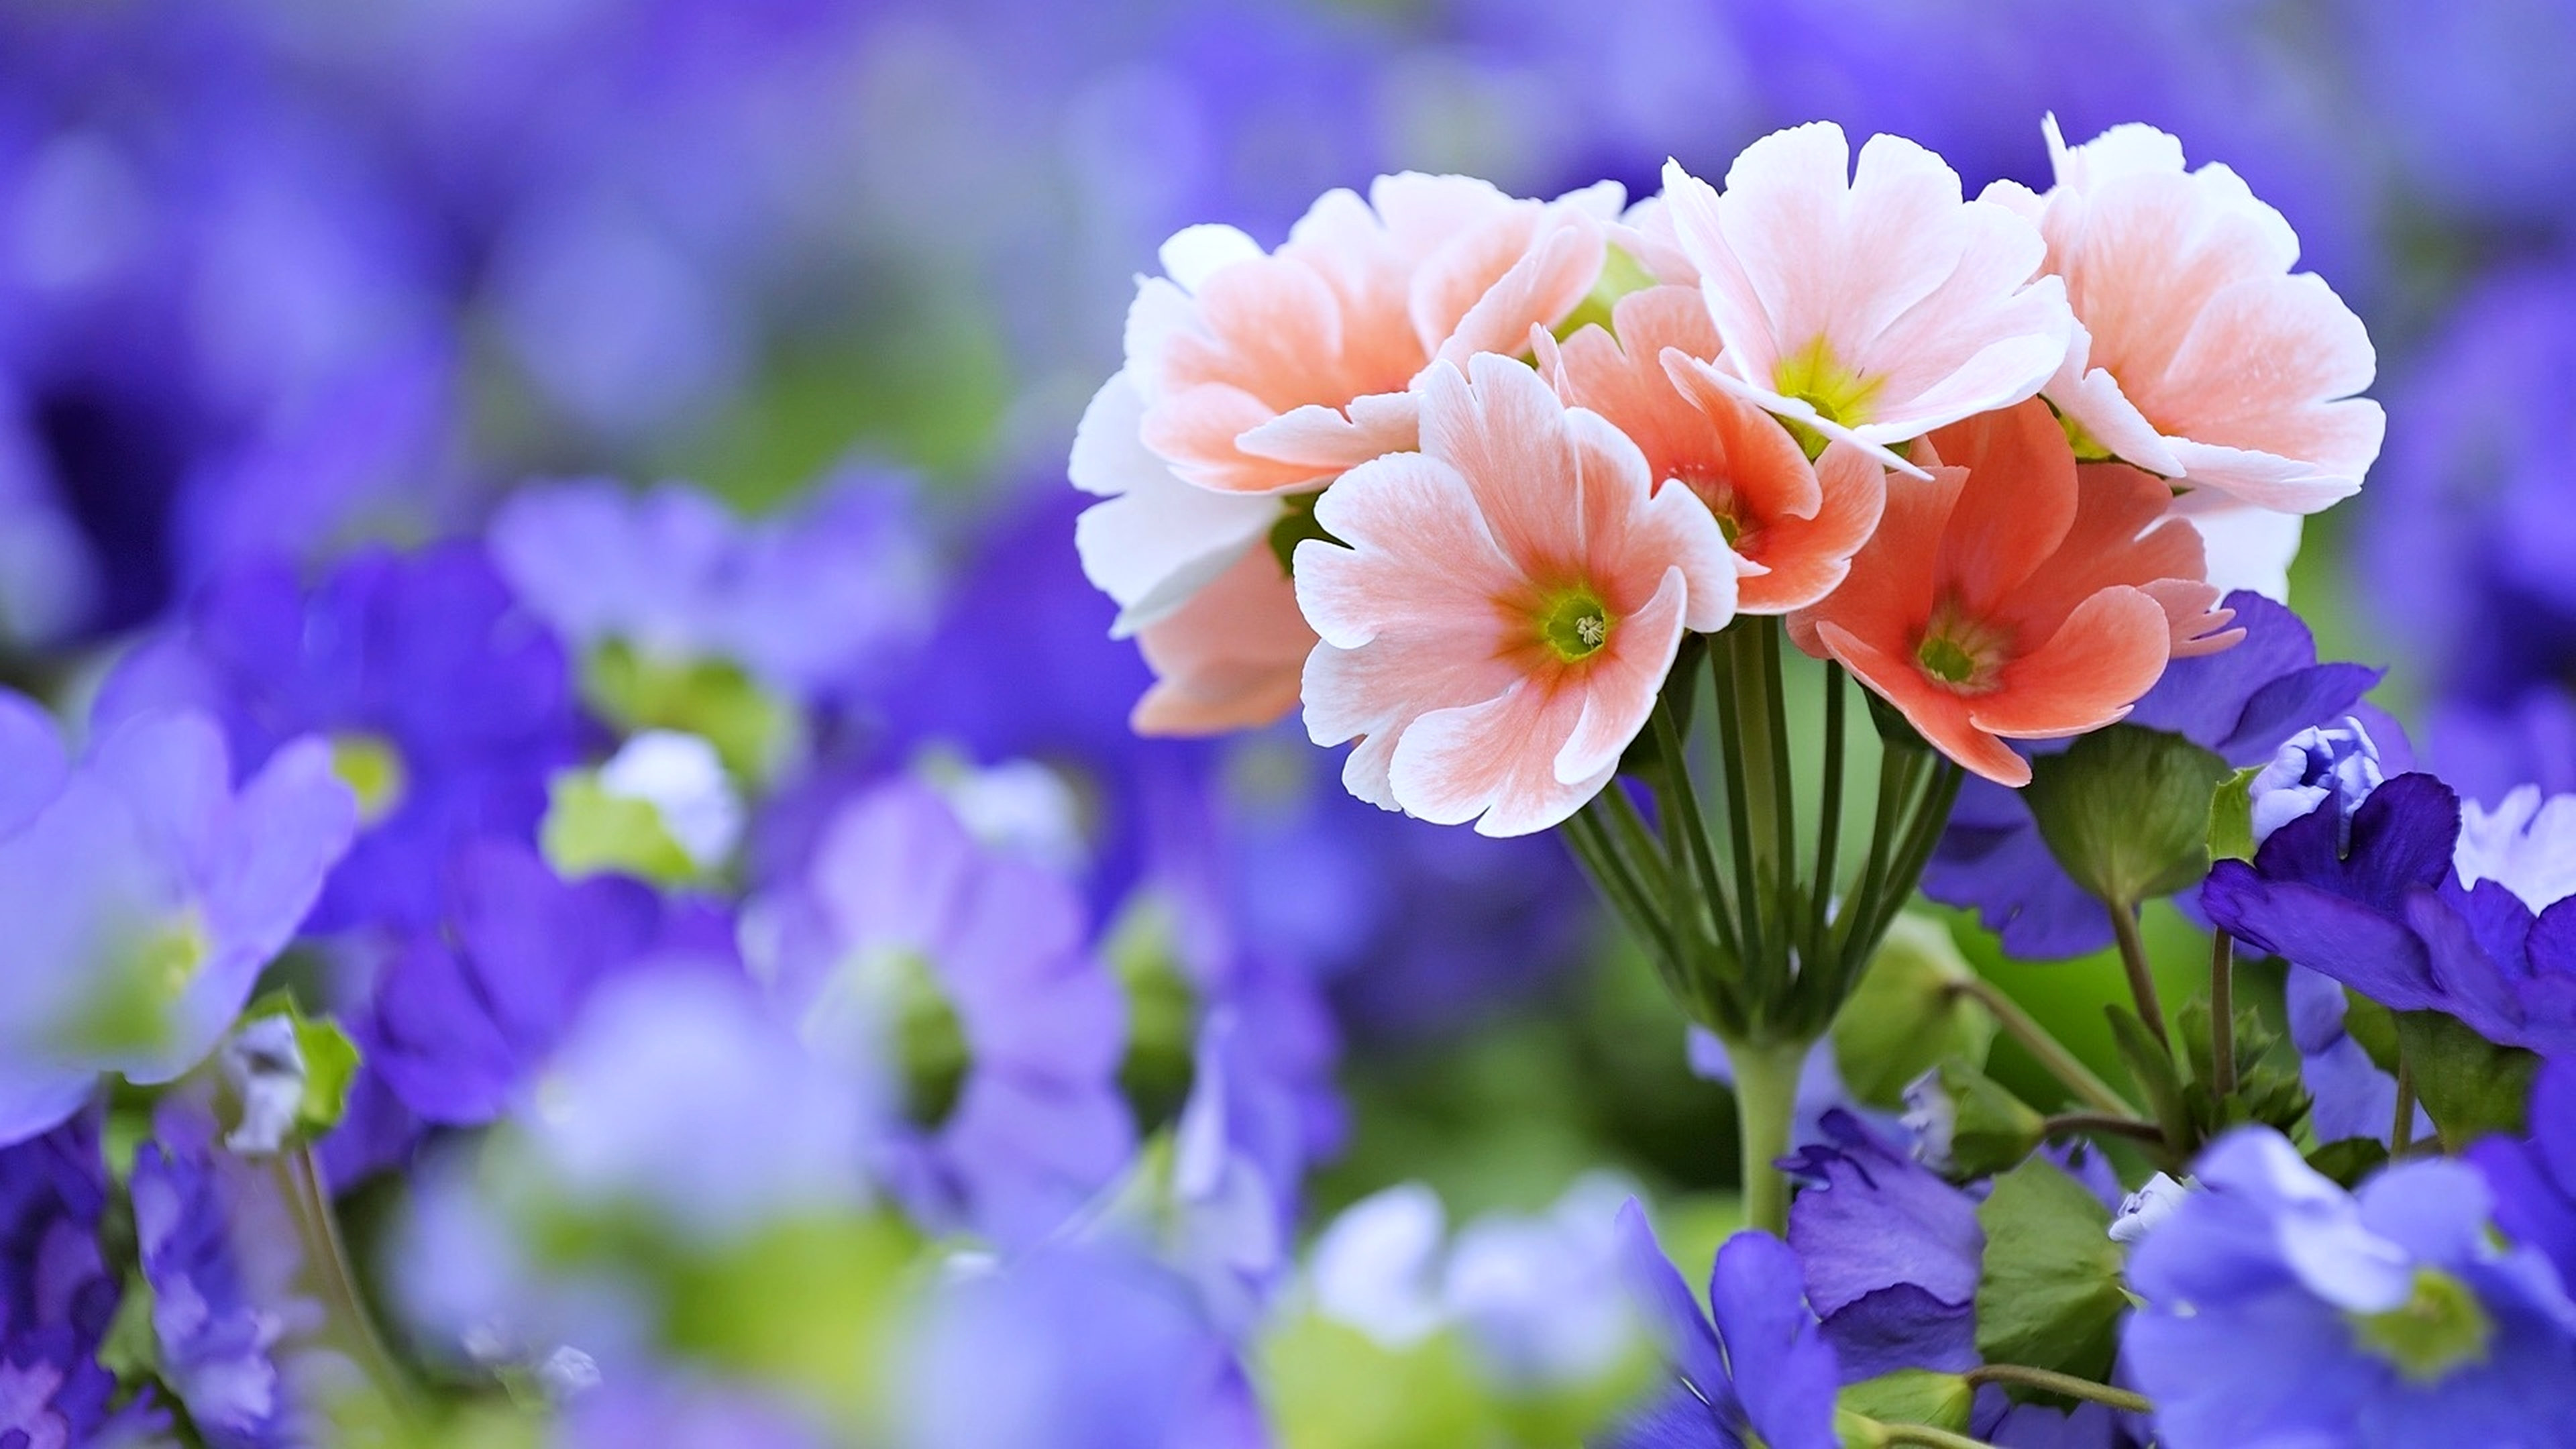 Beautiful flowers 4k wallpaper 3840x2160 izmirmasajfo